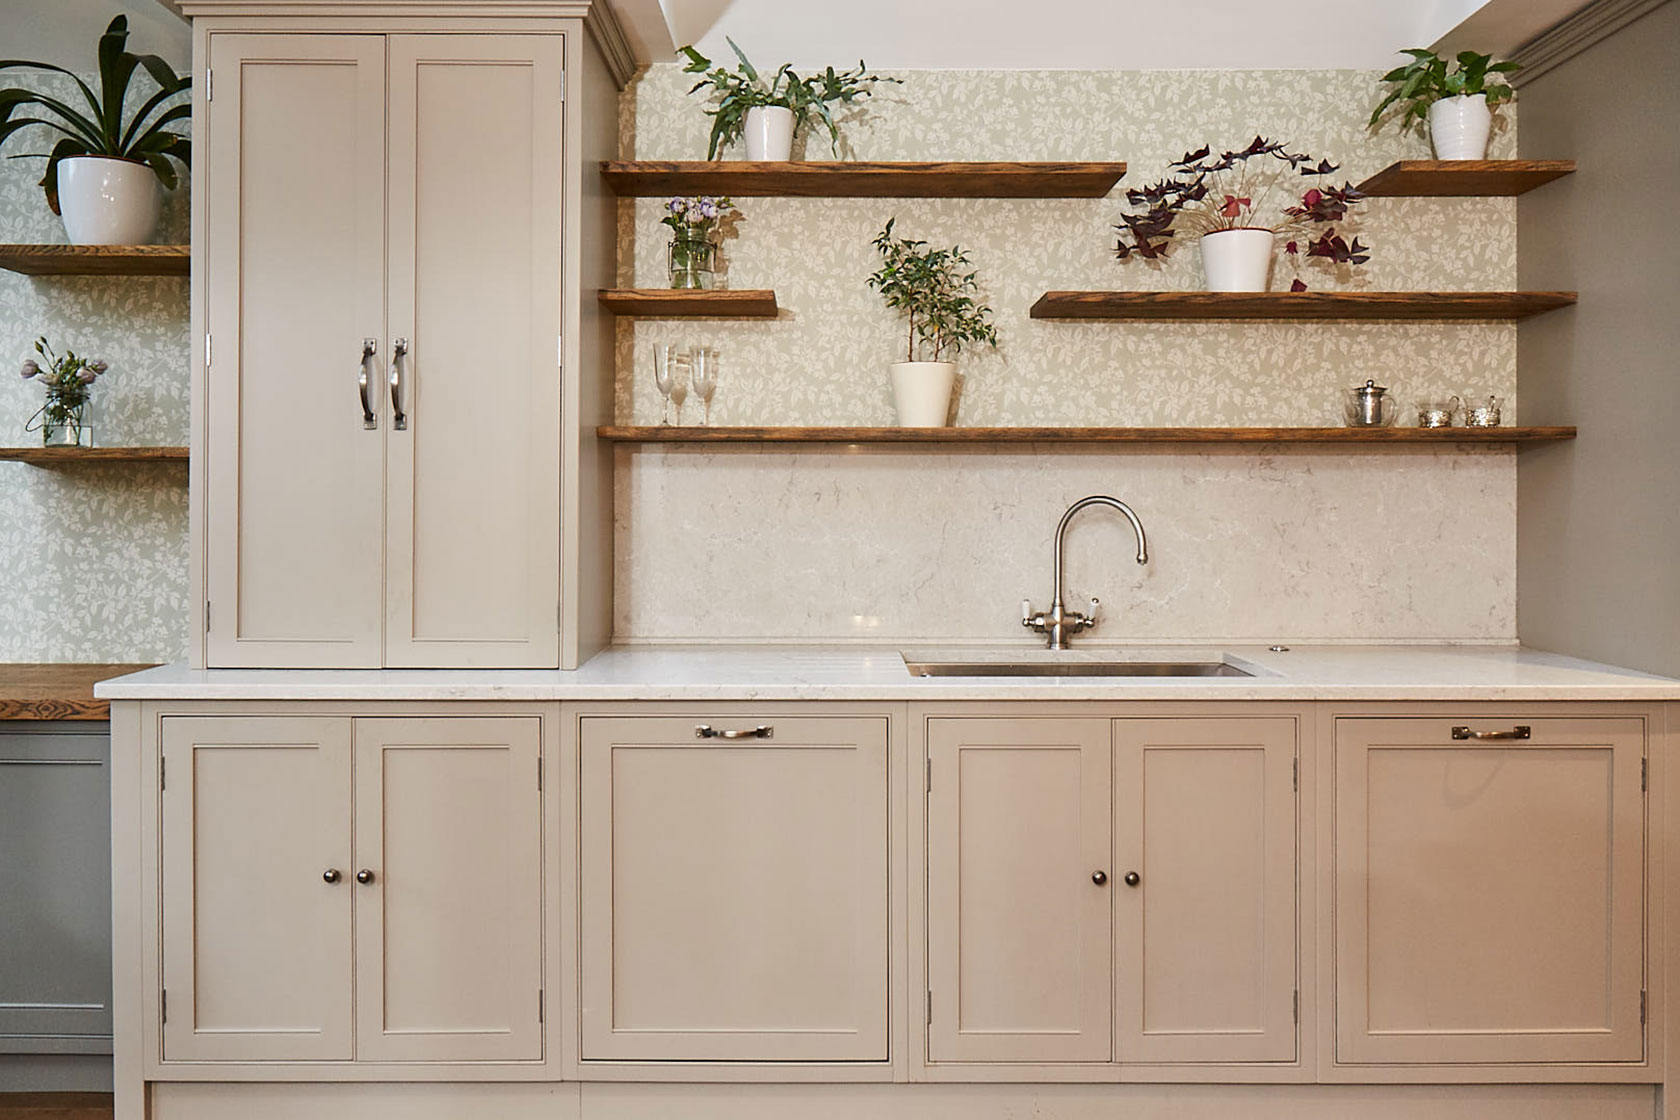 Traditional kitchen sink run with open oak shelves and green wallpaper